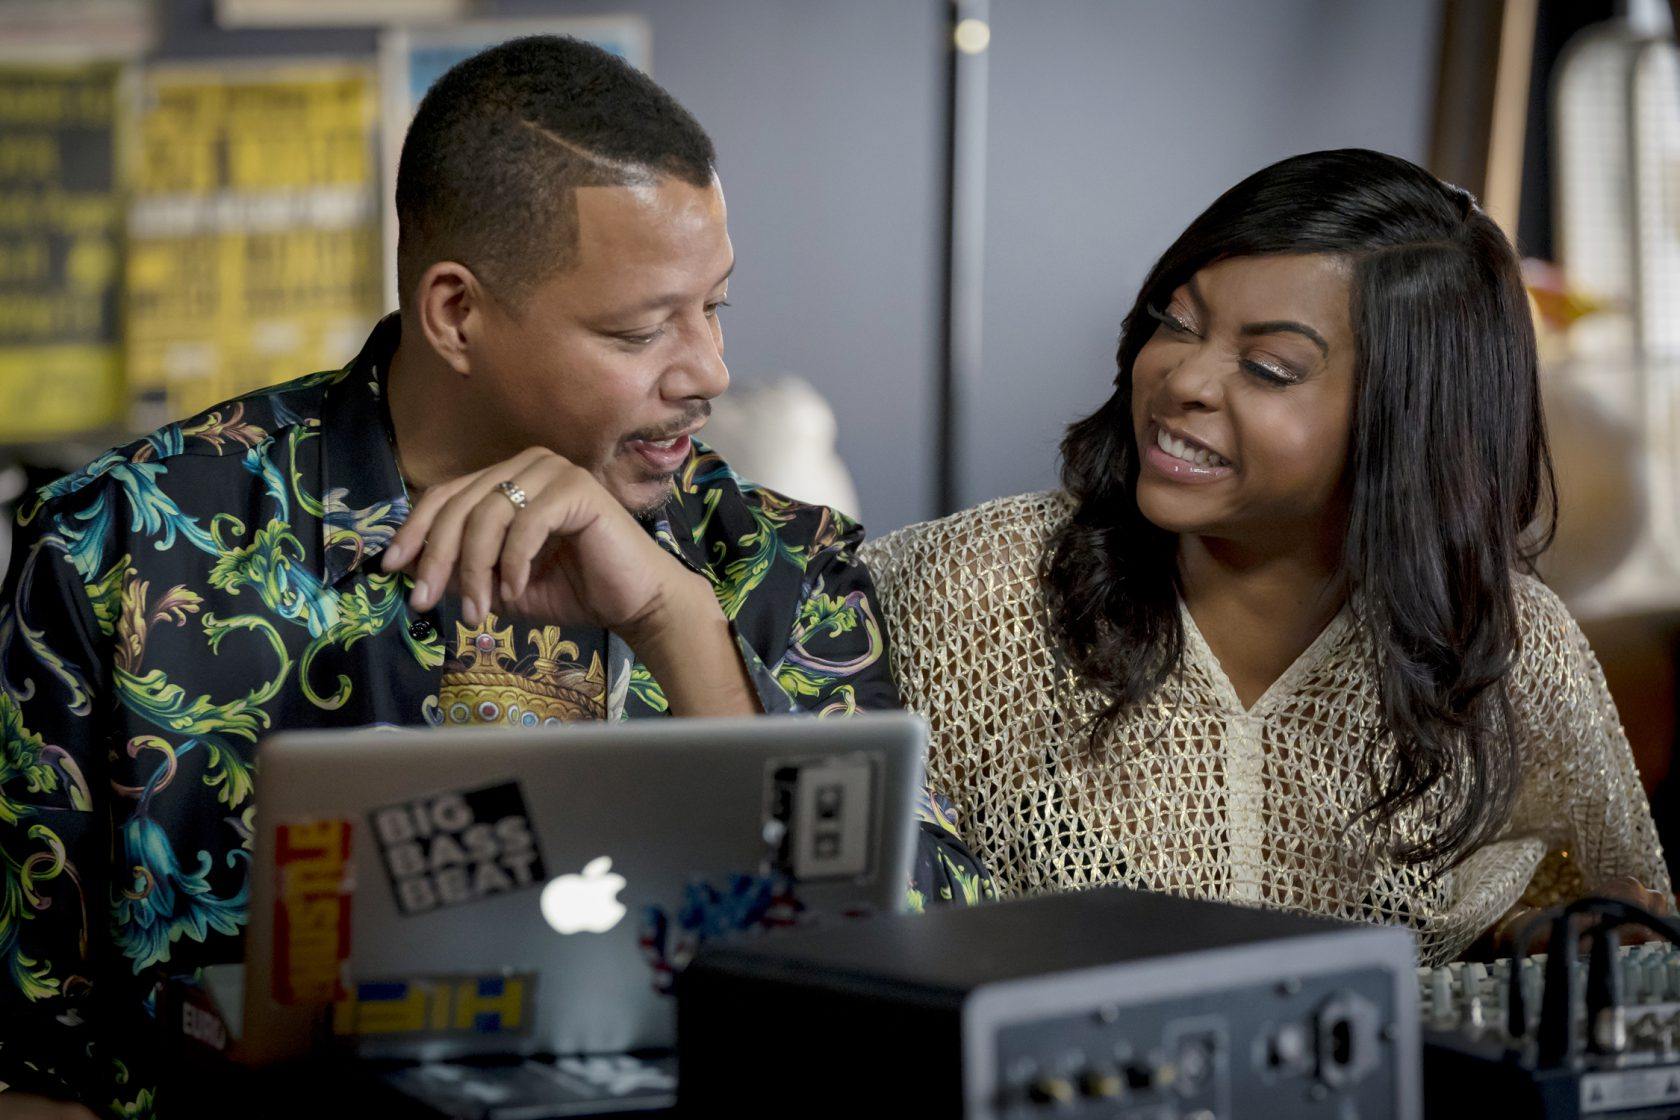 Empire - Cookie and Lucious